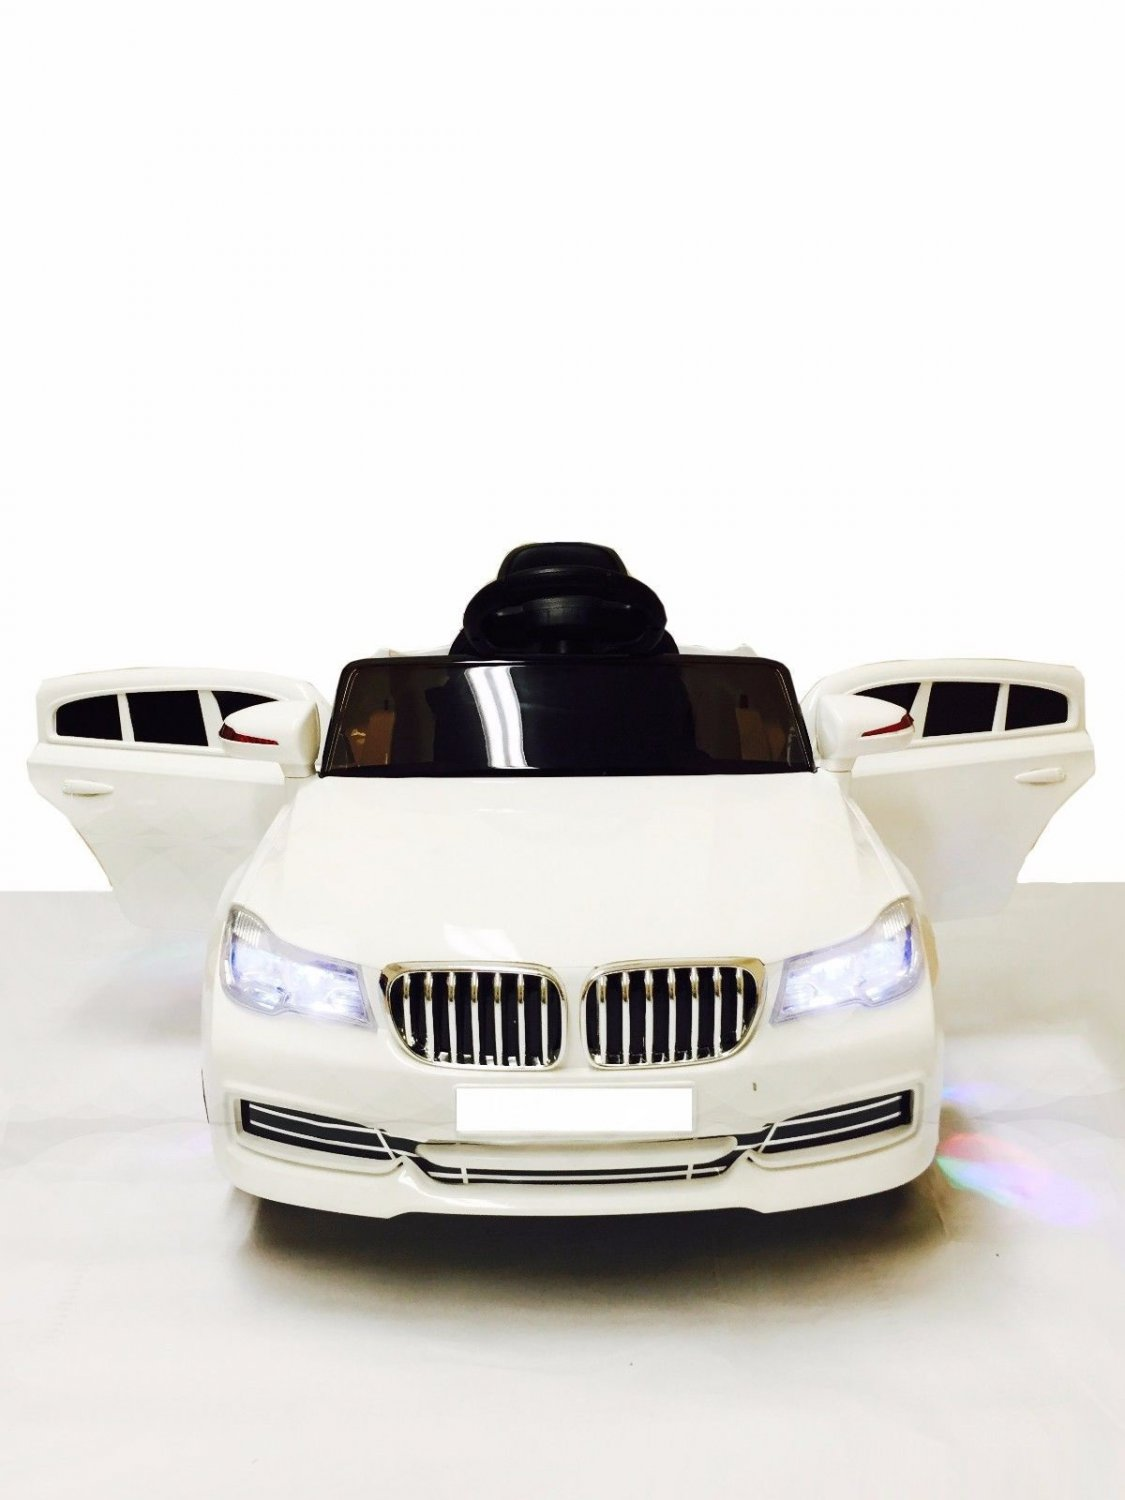 Ride On Car For Kids BMW with Remote Control | White